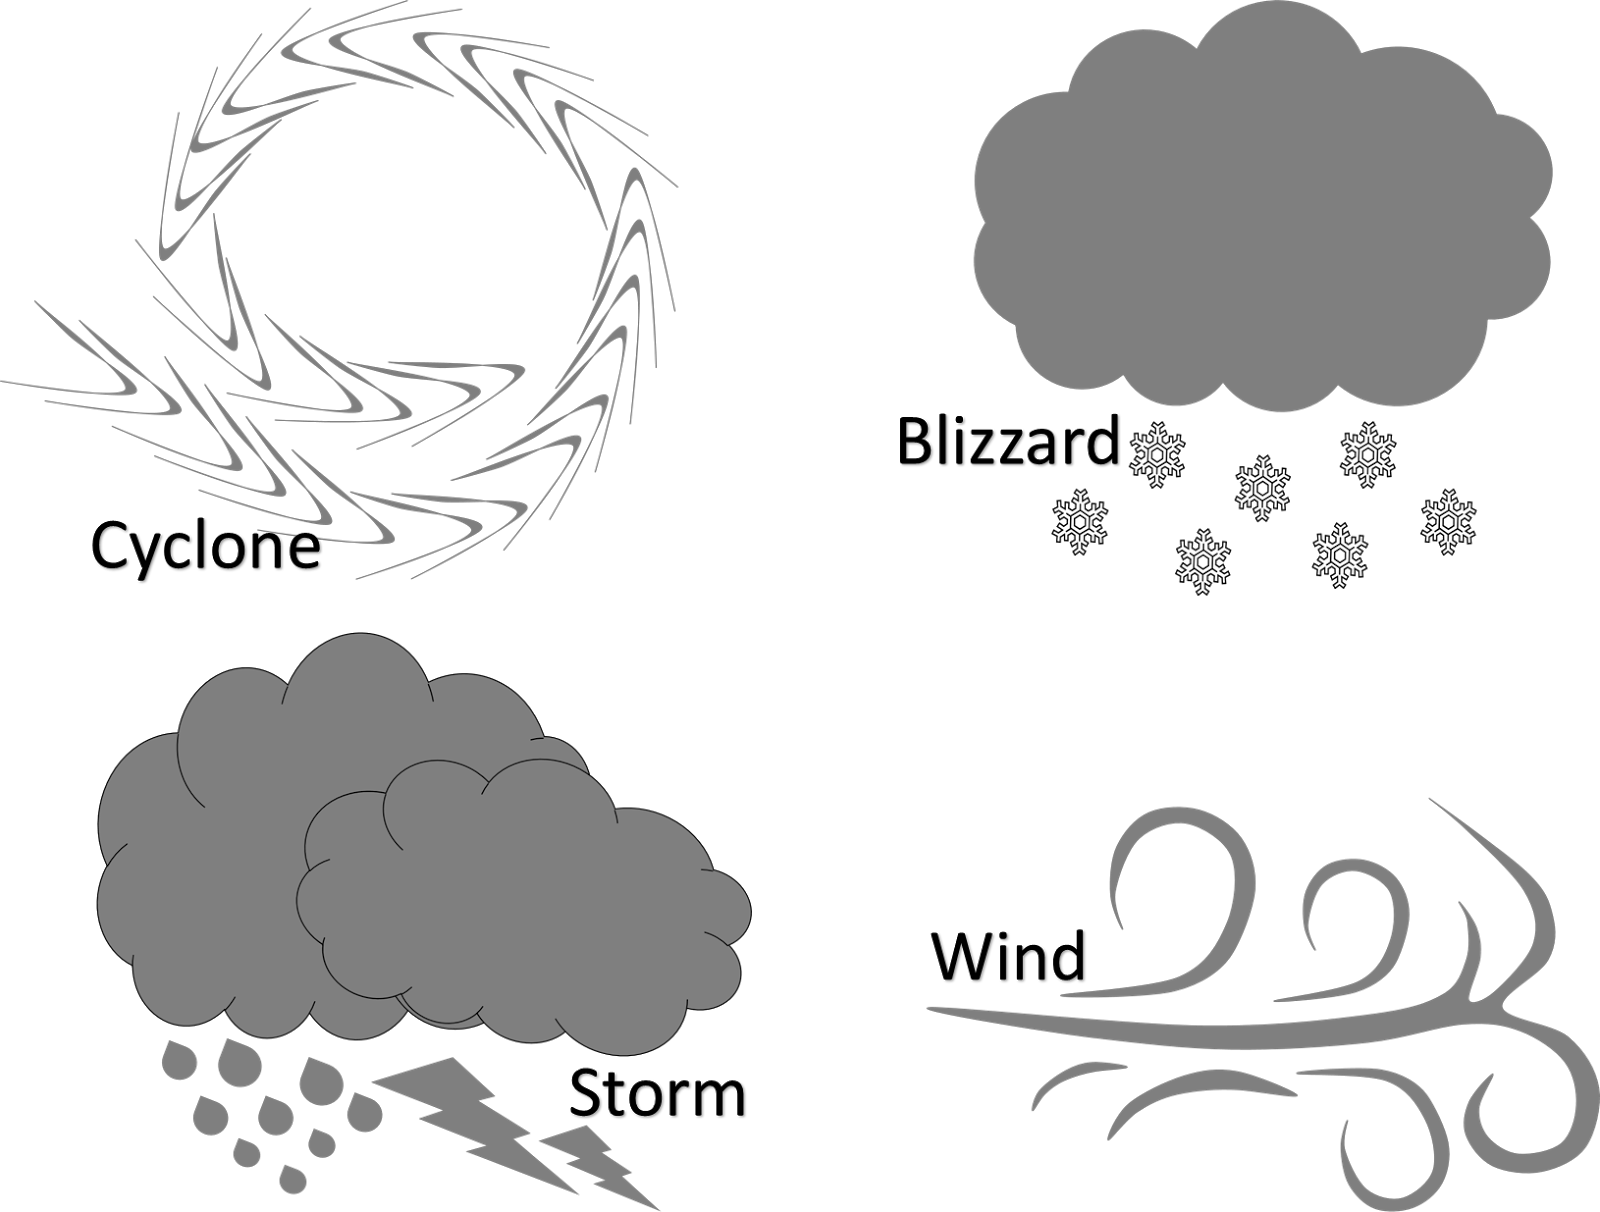 Blizzard clipart black and white. Natural disaster free creationz